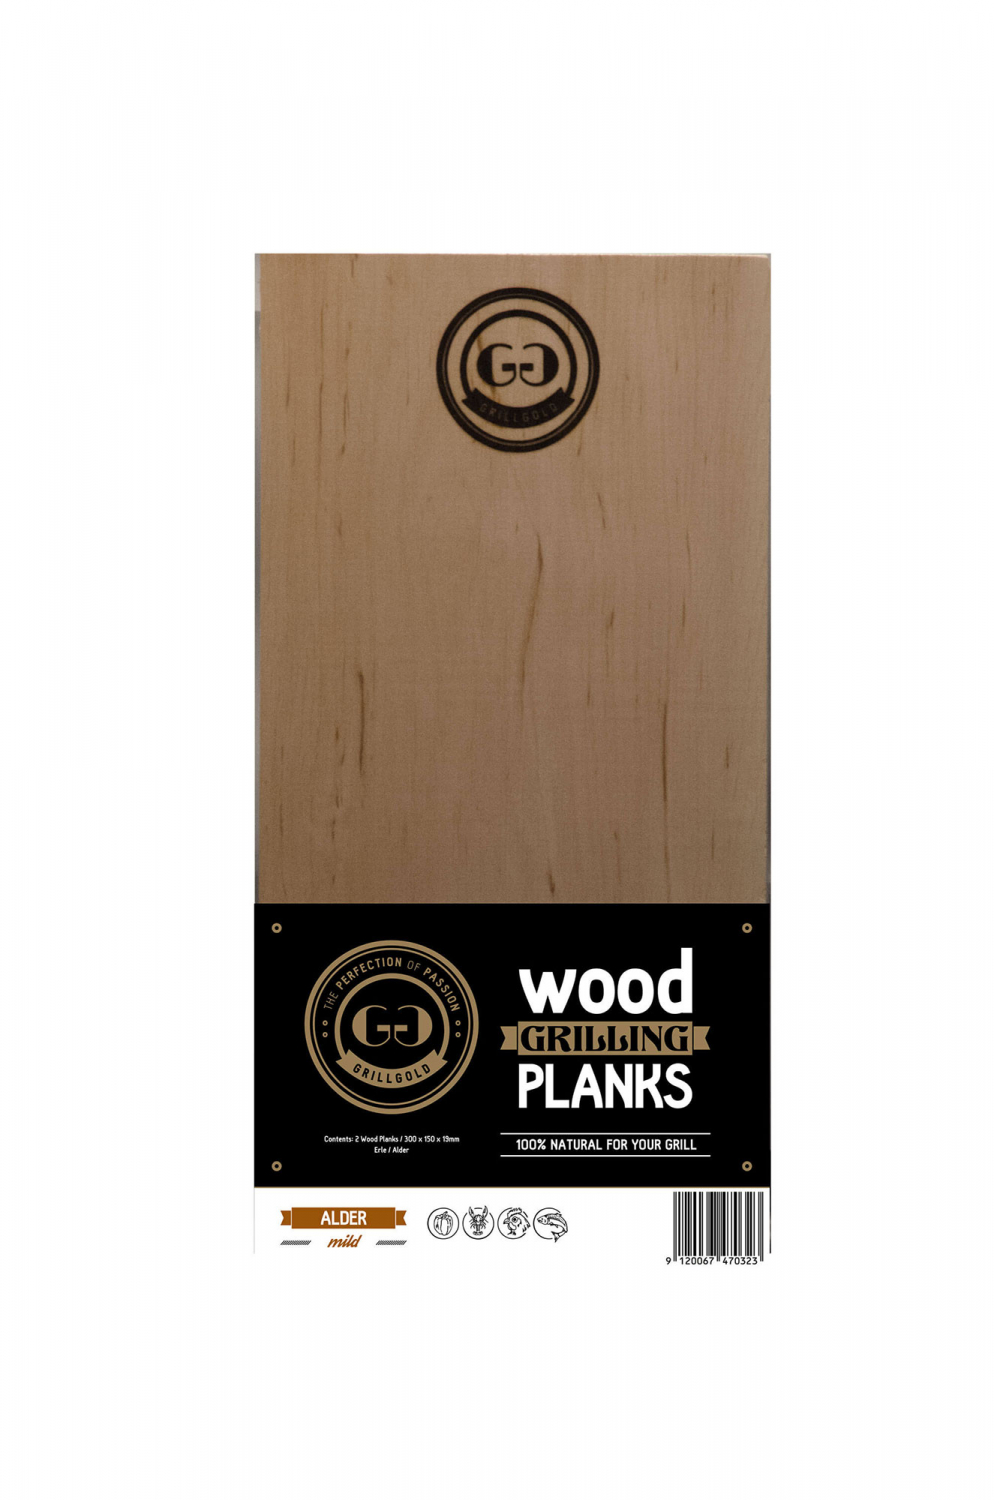 Grillgold's Wood Grilling Plank / Erle